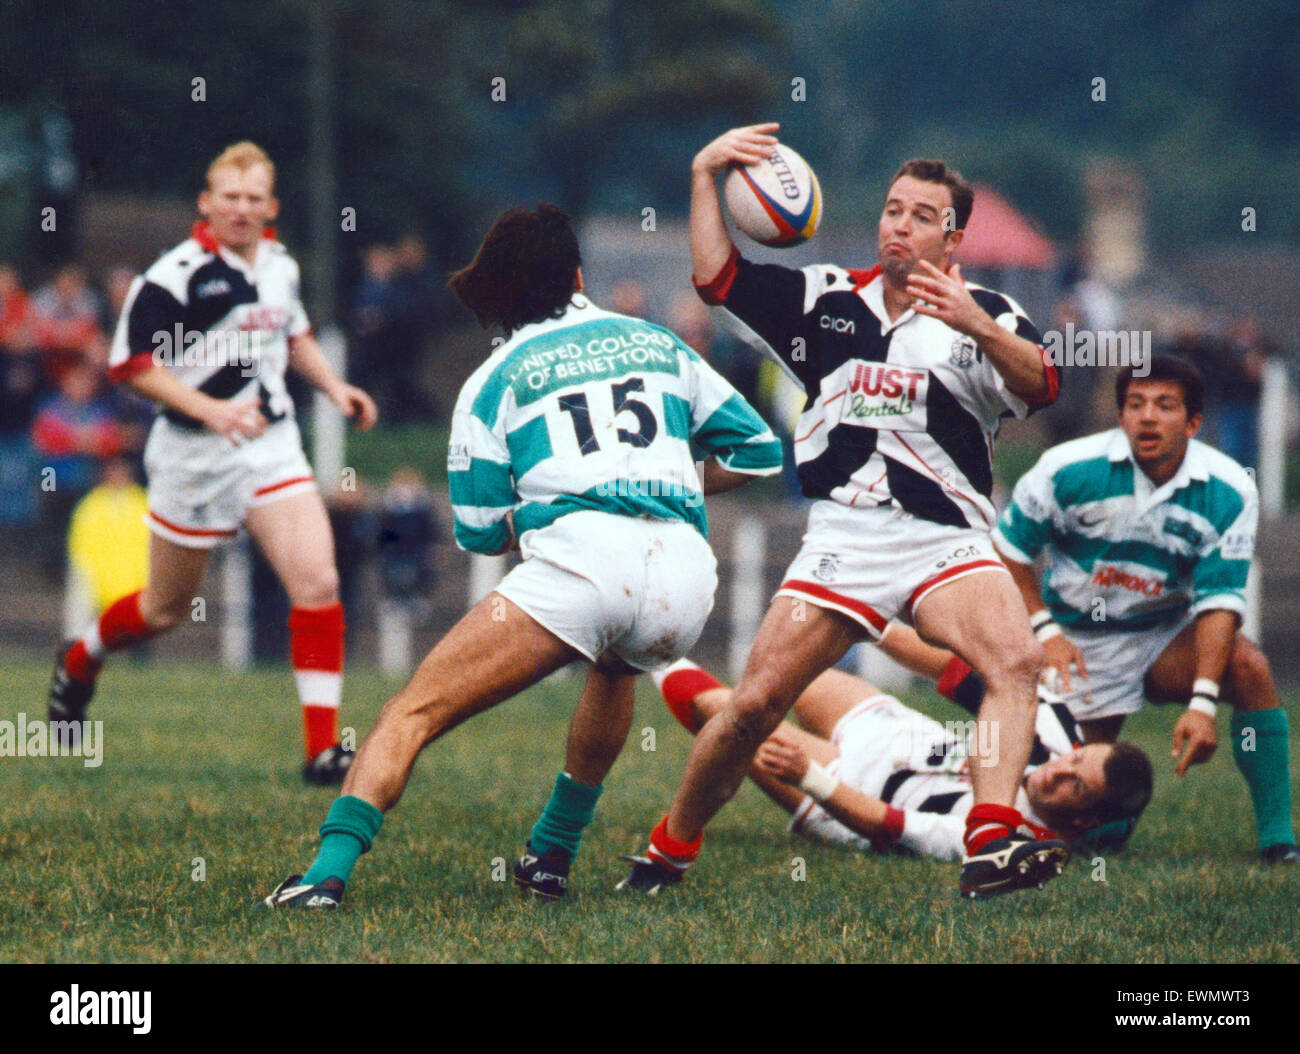 Rugby player David Manley, circa 1997. - Stock Image